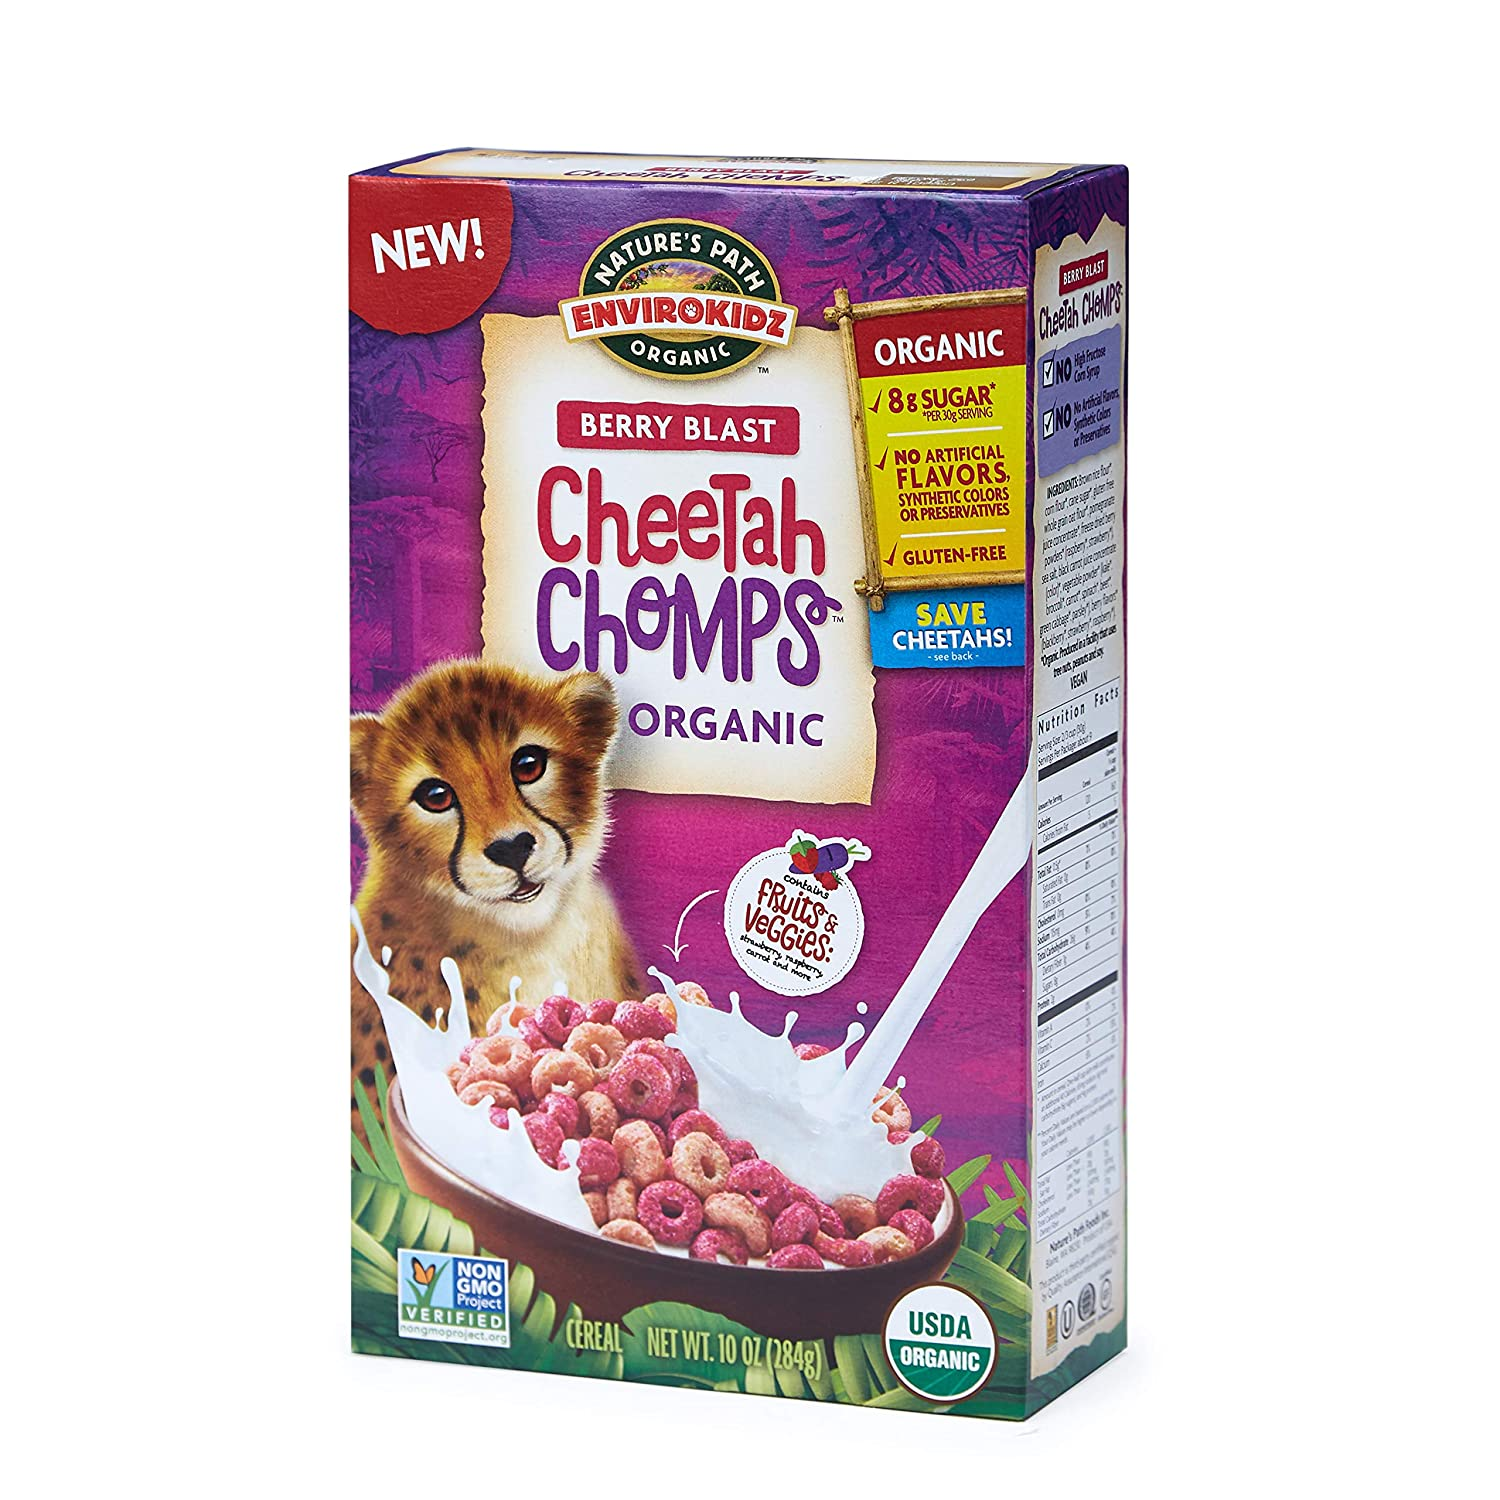 Nature's Path EnviroKidz Cheetah Chomps Cereal, Healthy, Organic, Gluten-Free, 10 oz Box